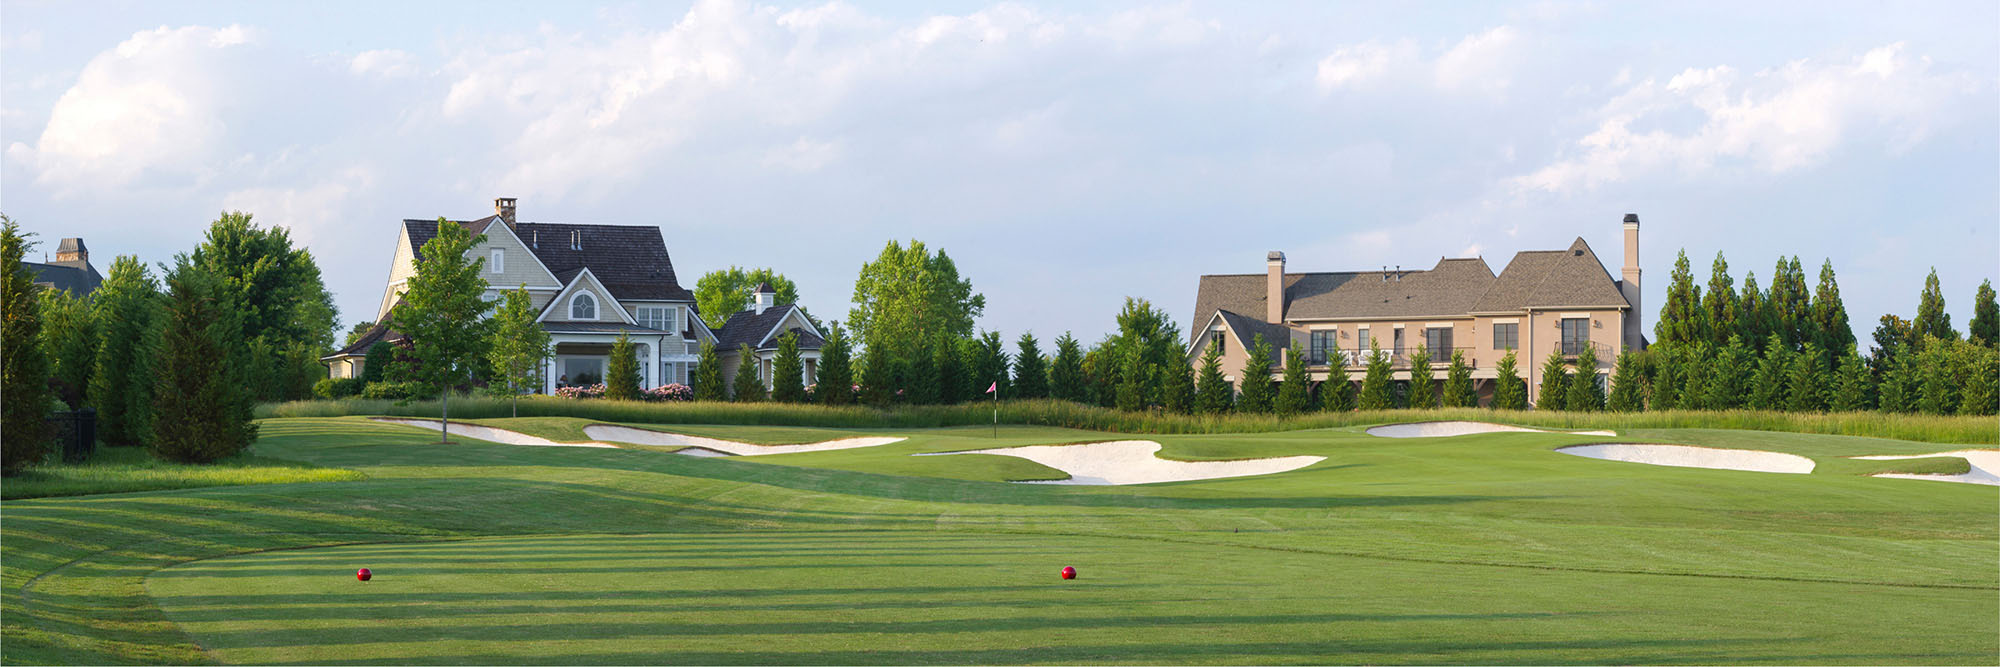 Golf Course Image - Trump National Charlotte No. 15